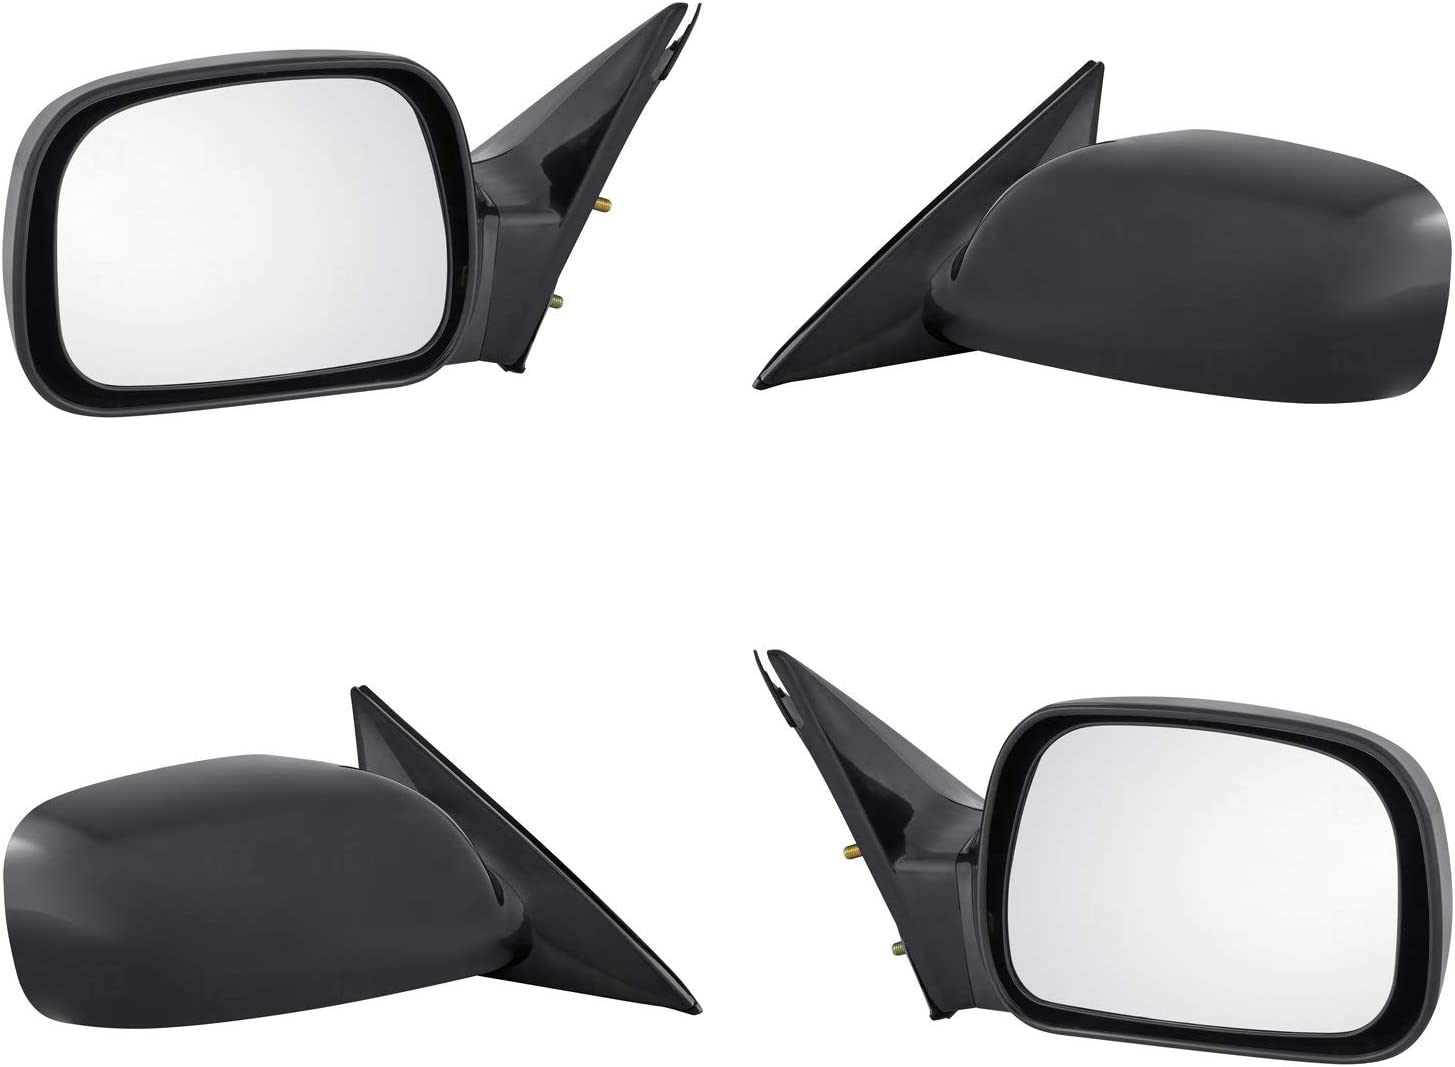 TO1320210 Power for 2002-2006 Toyota Camry Black Roane Concepts Replacement Left Driver Side Door Mirror Non-Heated